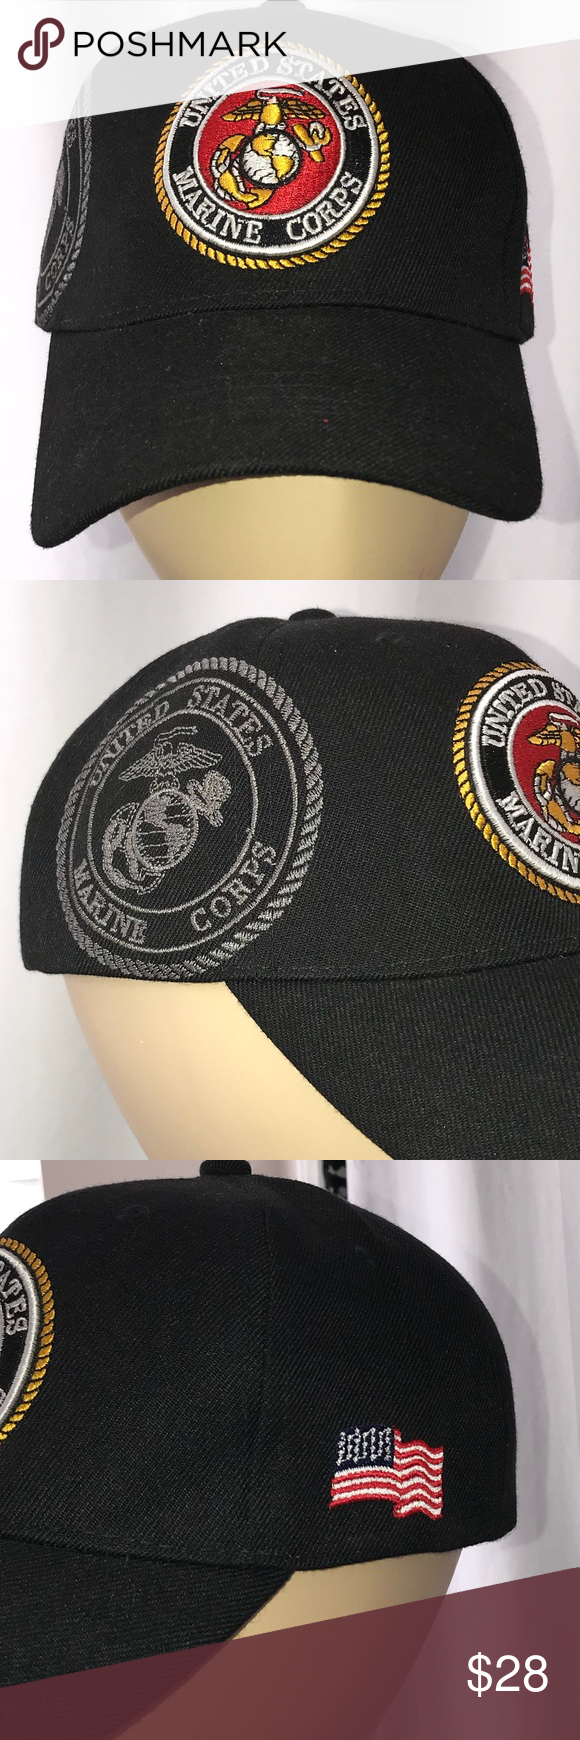 71d10a5c99e USMC embroidered hat cap cover in 2018